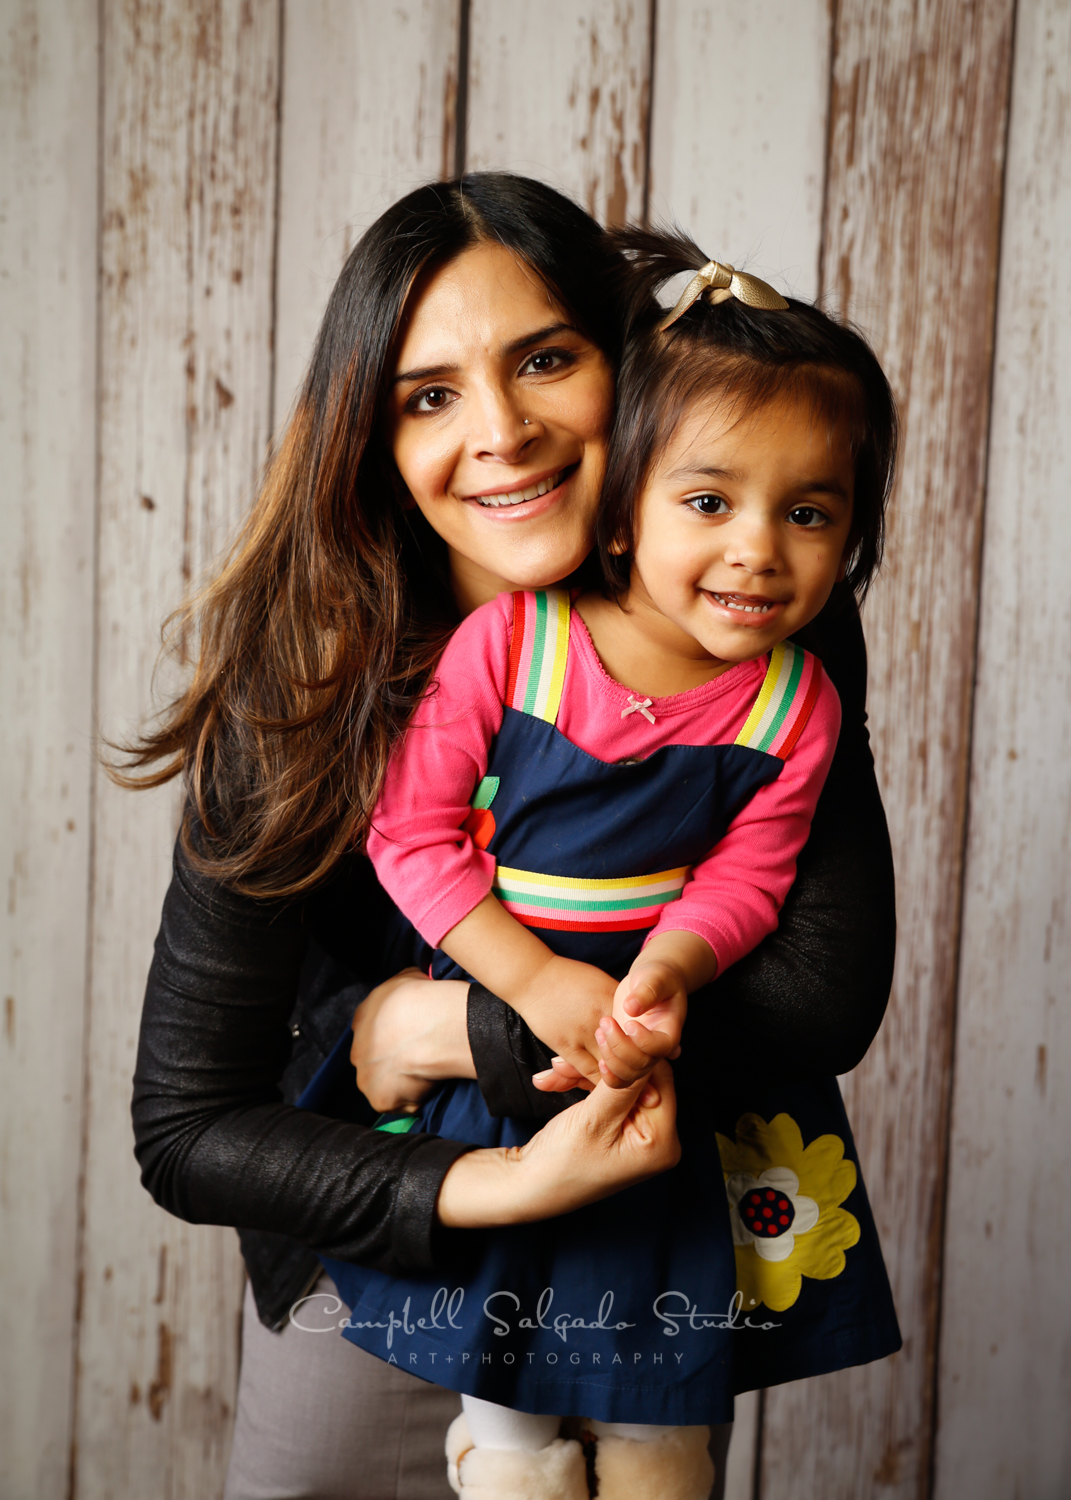 Portrait of mother and daughter on white fenceboards background by family photographers at Campbell Salgado Studio in Portland, Oregon.